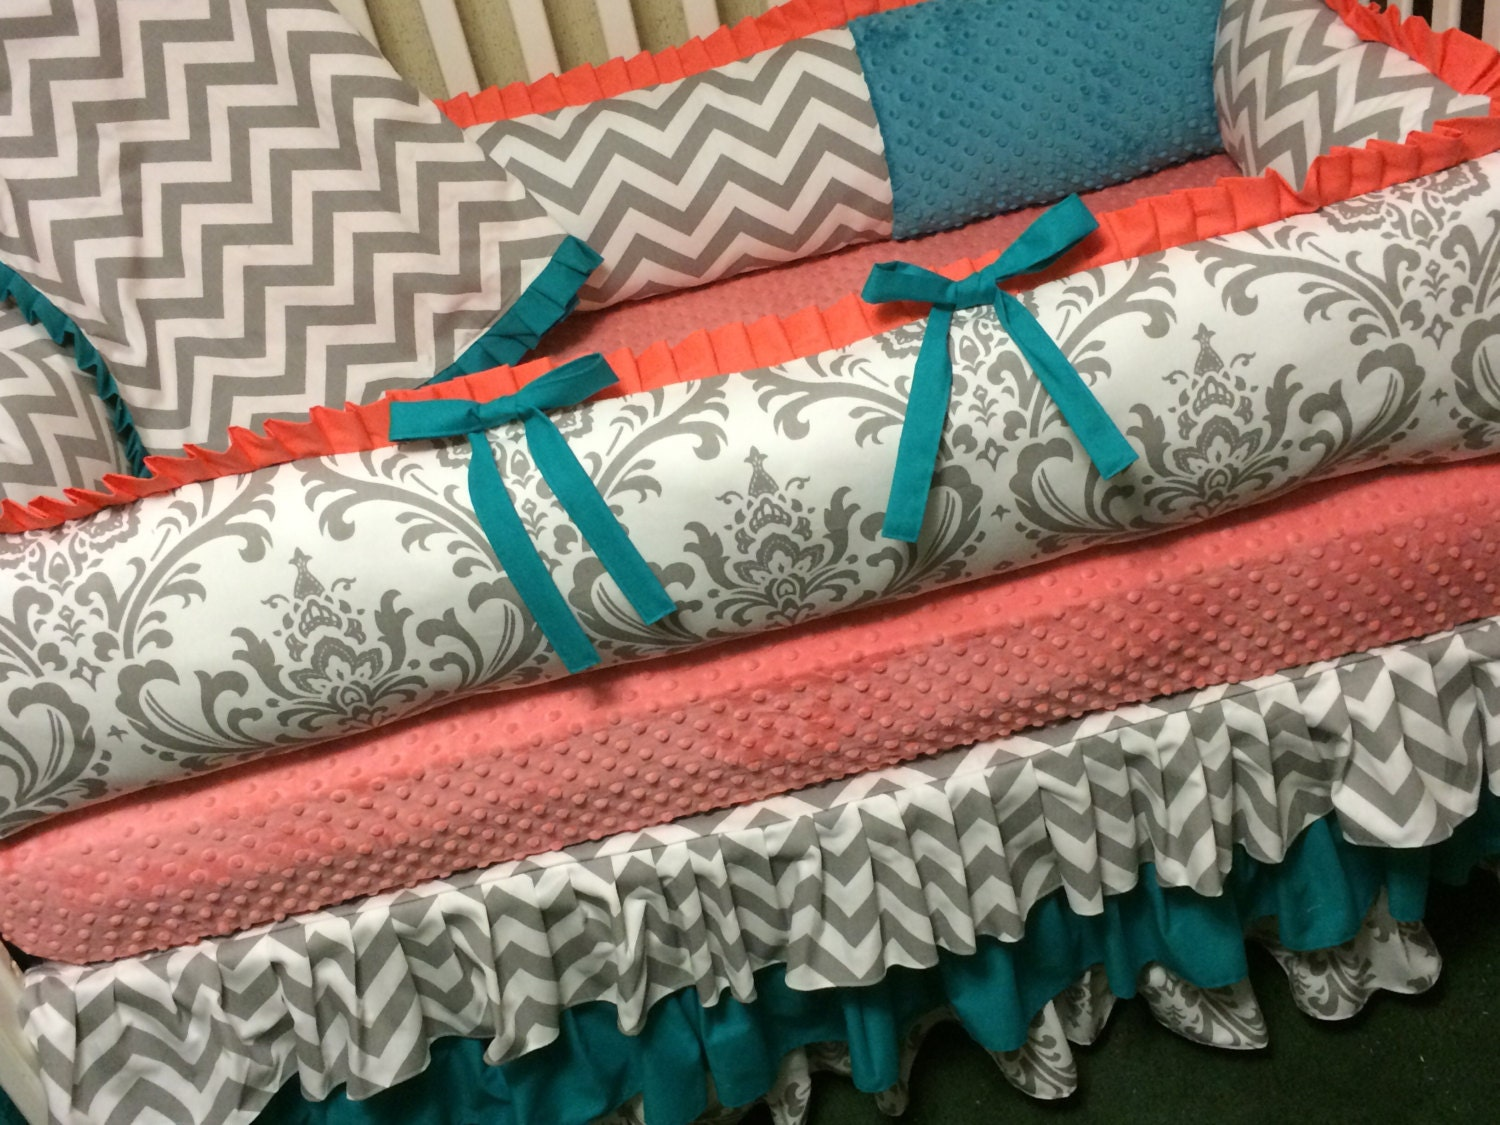 Baby girl bedding chevron - Custom Baby Bedding 4 Pc Coral Teal And Gray Damask And Chevron Baby Girl Bedding